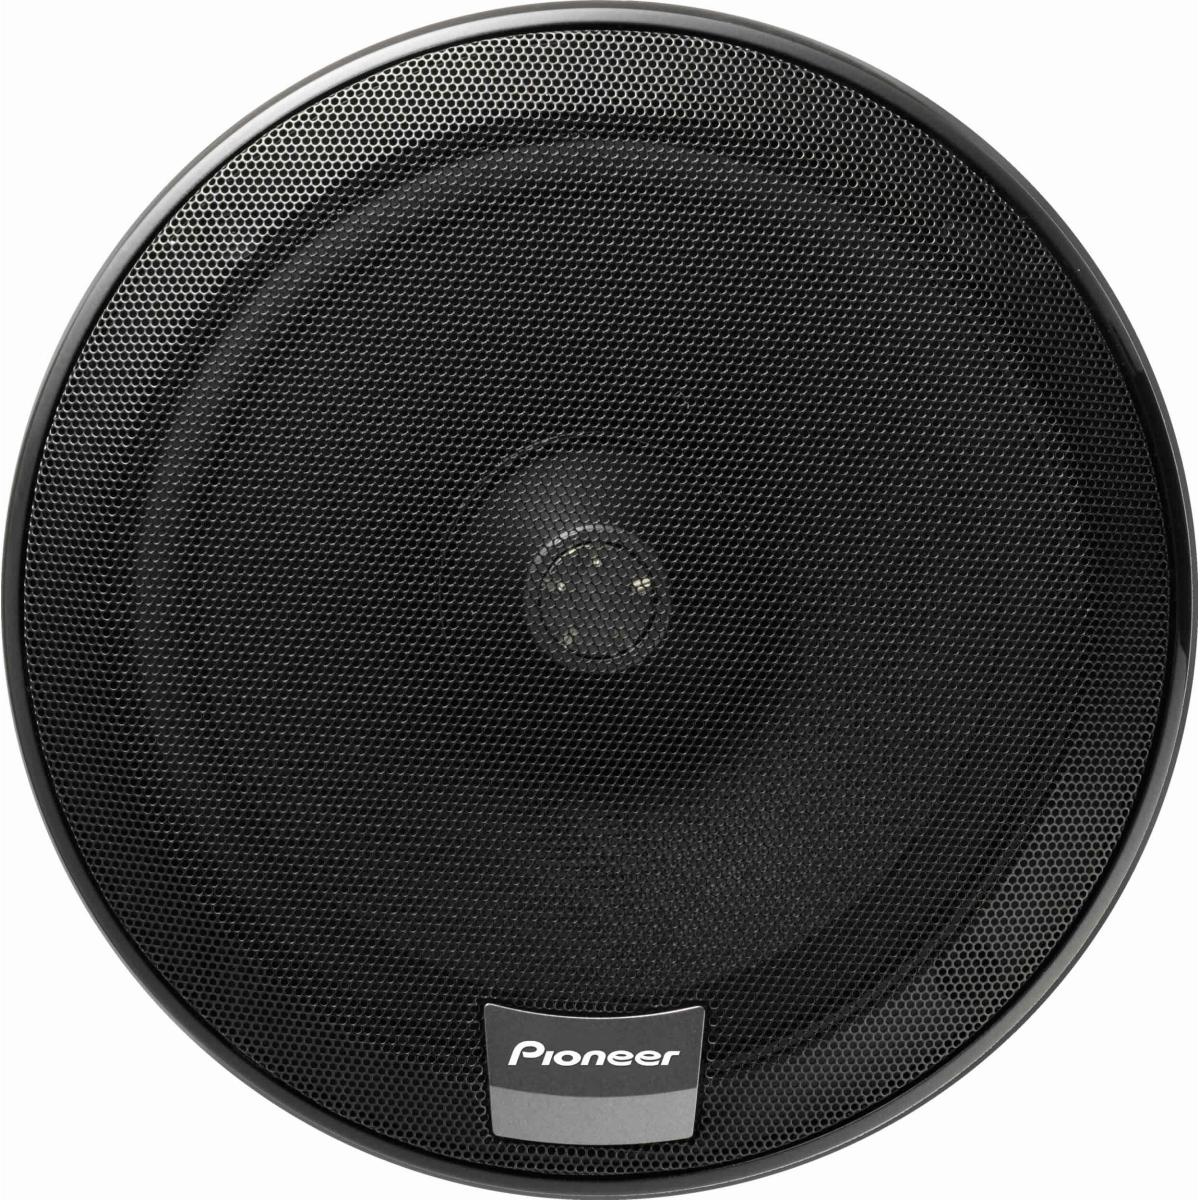 Car Speakers Pioneer TS-C172PRS 4